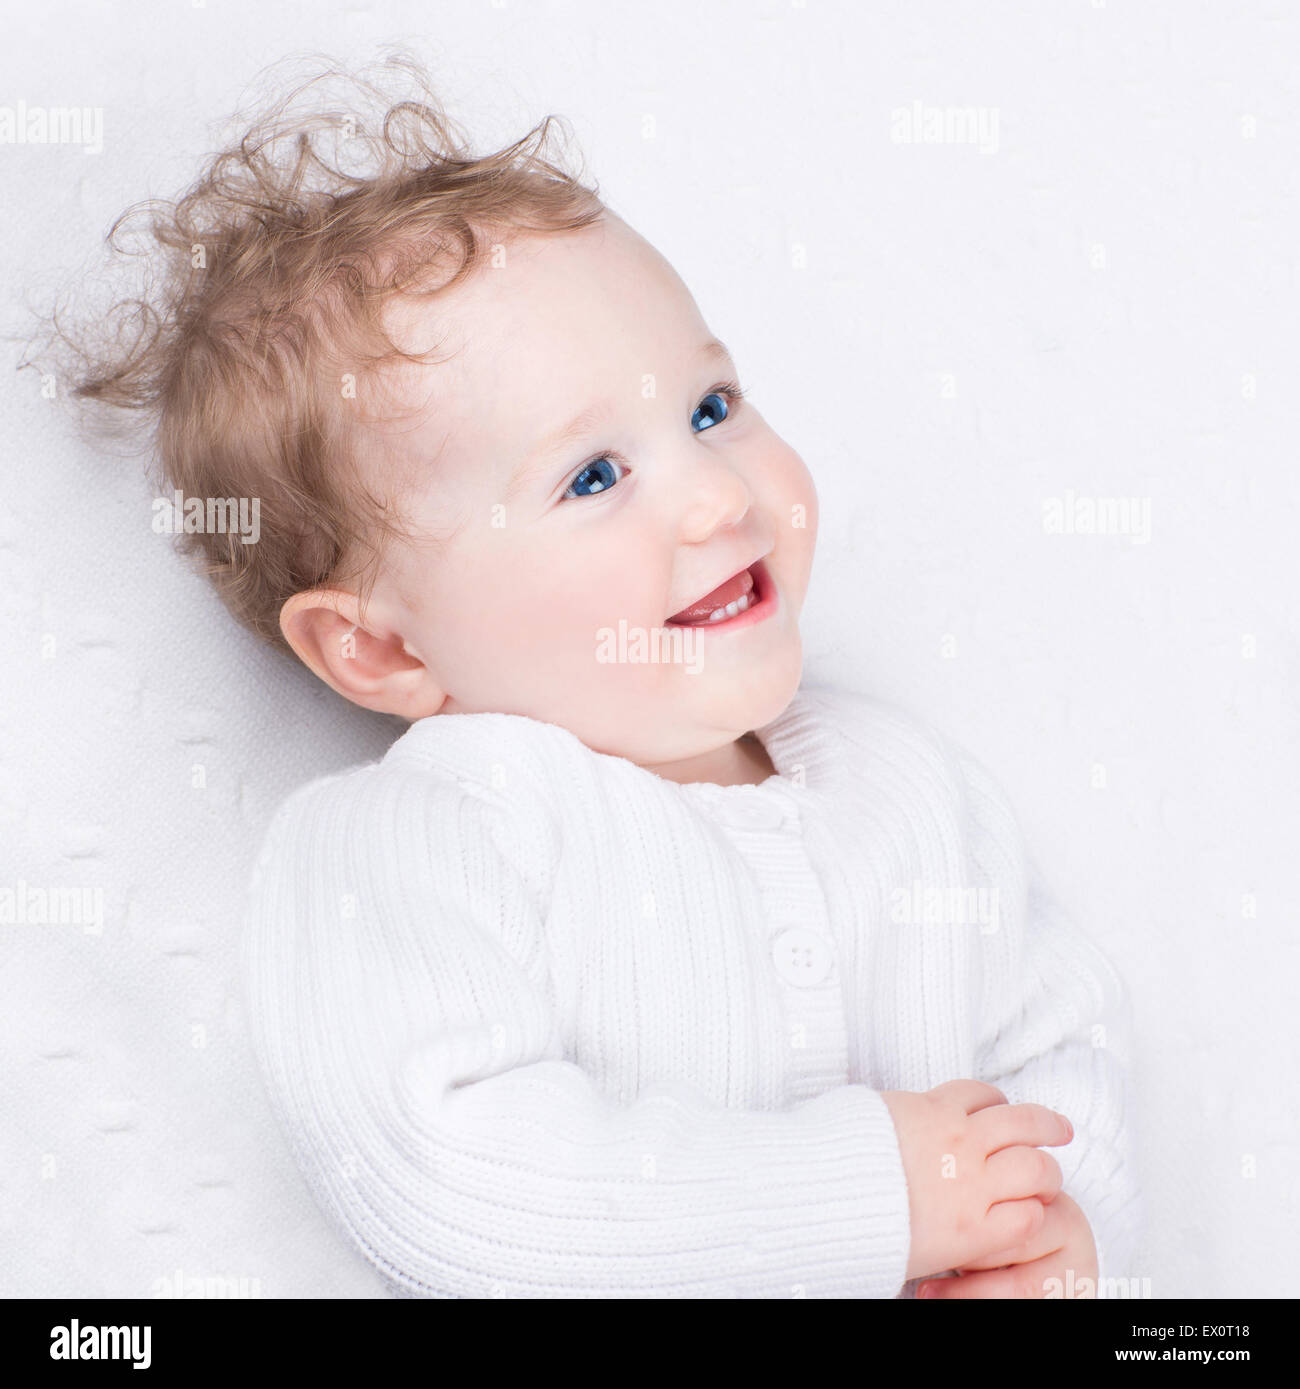 Adorable laughing little baby wearing a warm knitted jacket on a white blanket - Stock Image